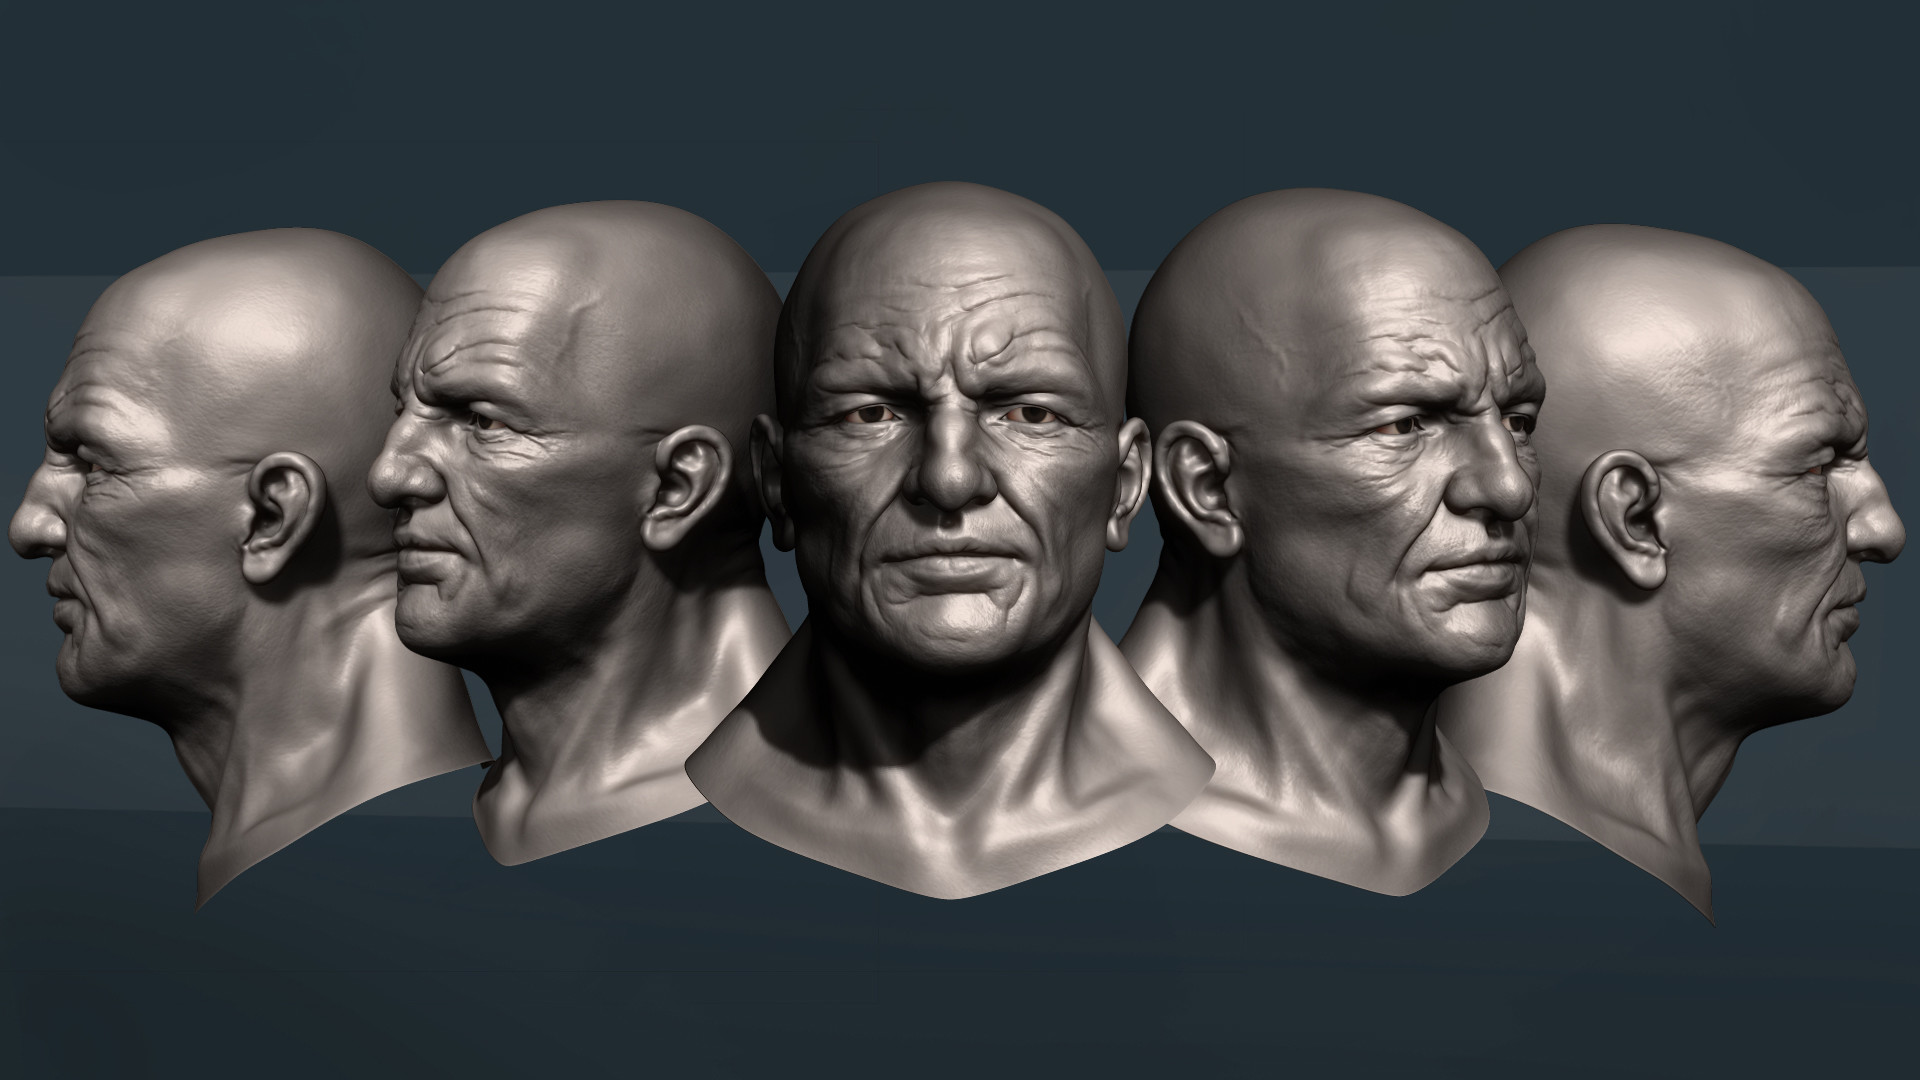 Omar chaouch zbrush hex omar chaouch